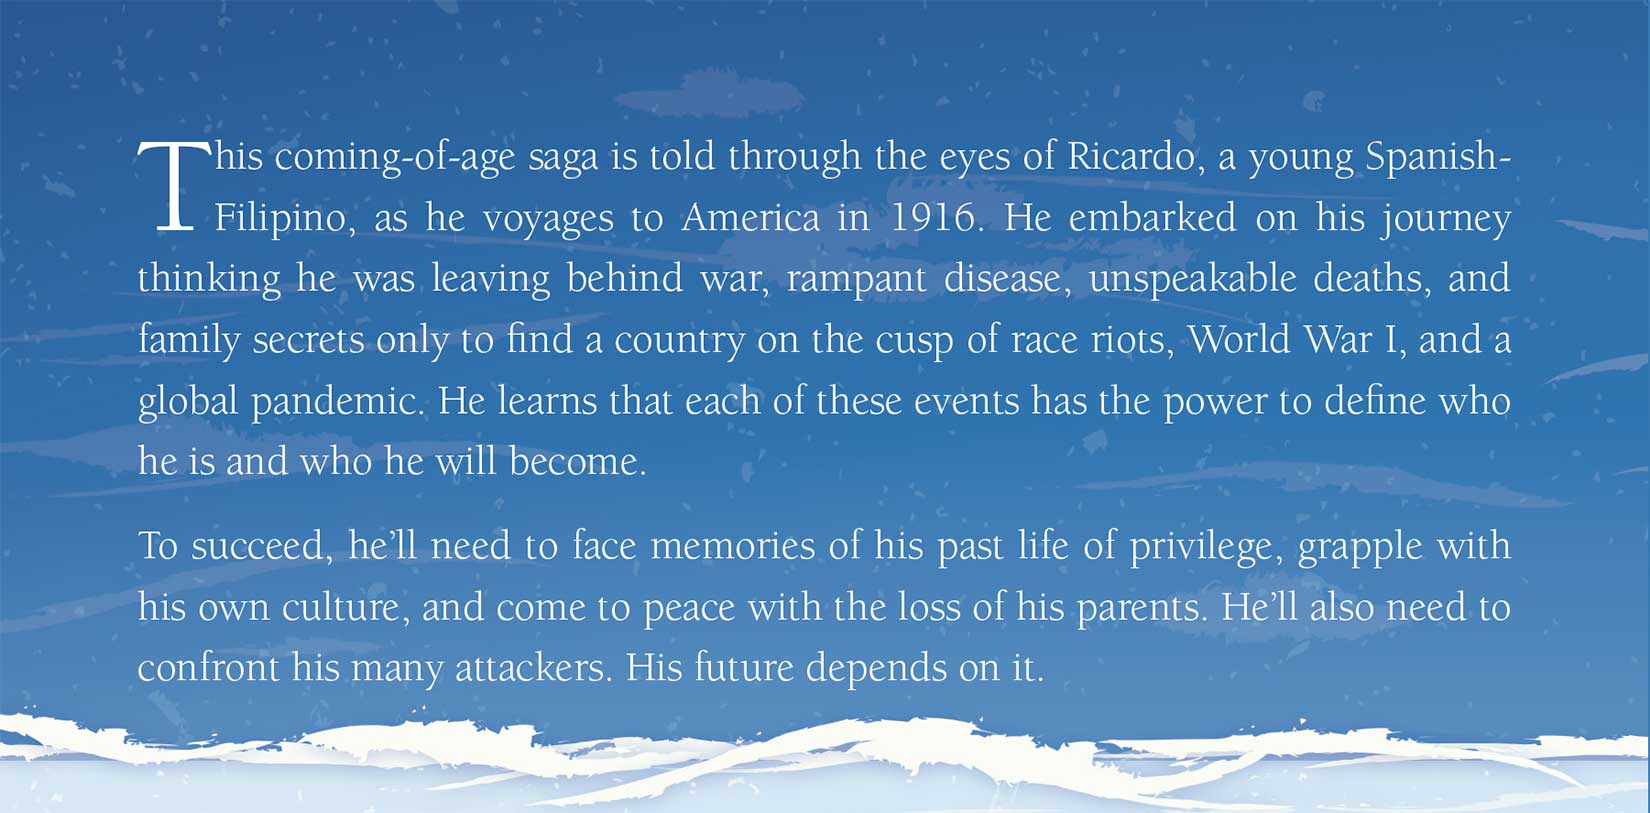 From the back cover: This coming-of-age saga is told through the eyes of Ricardo, a young Spanish-Filipino, as he voyages to America in 1916. He embarked on his journey thinking he was leaving behind war, rampant disease, unspeakable deaths, and family secrets only to find a country on the cusp of race riots, World War I, and a global pandemic. He learns that each of these events has the power to define who he is and who he will become. To succeed, he'll need to face memories of his past life of privilege, grapple with his own culture, and come to peace with the loss of his parents. He'll also need to confront his many attackers. His future depends on it.